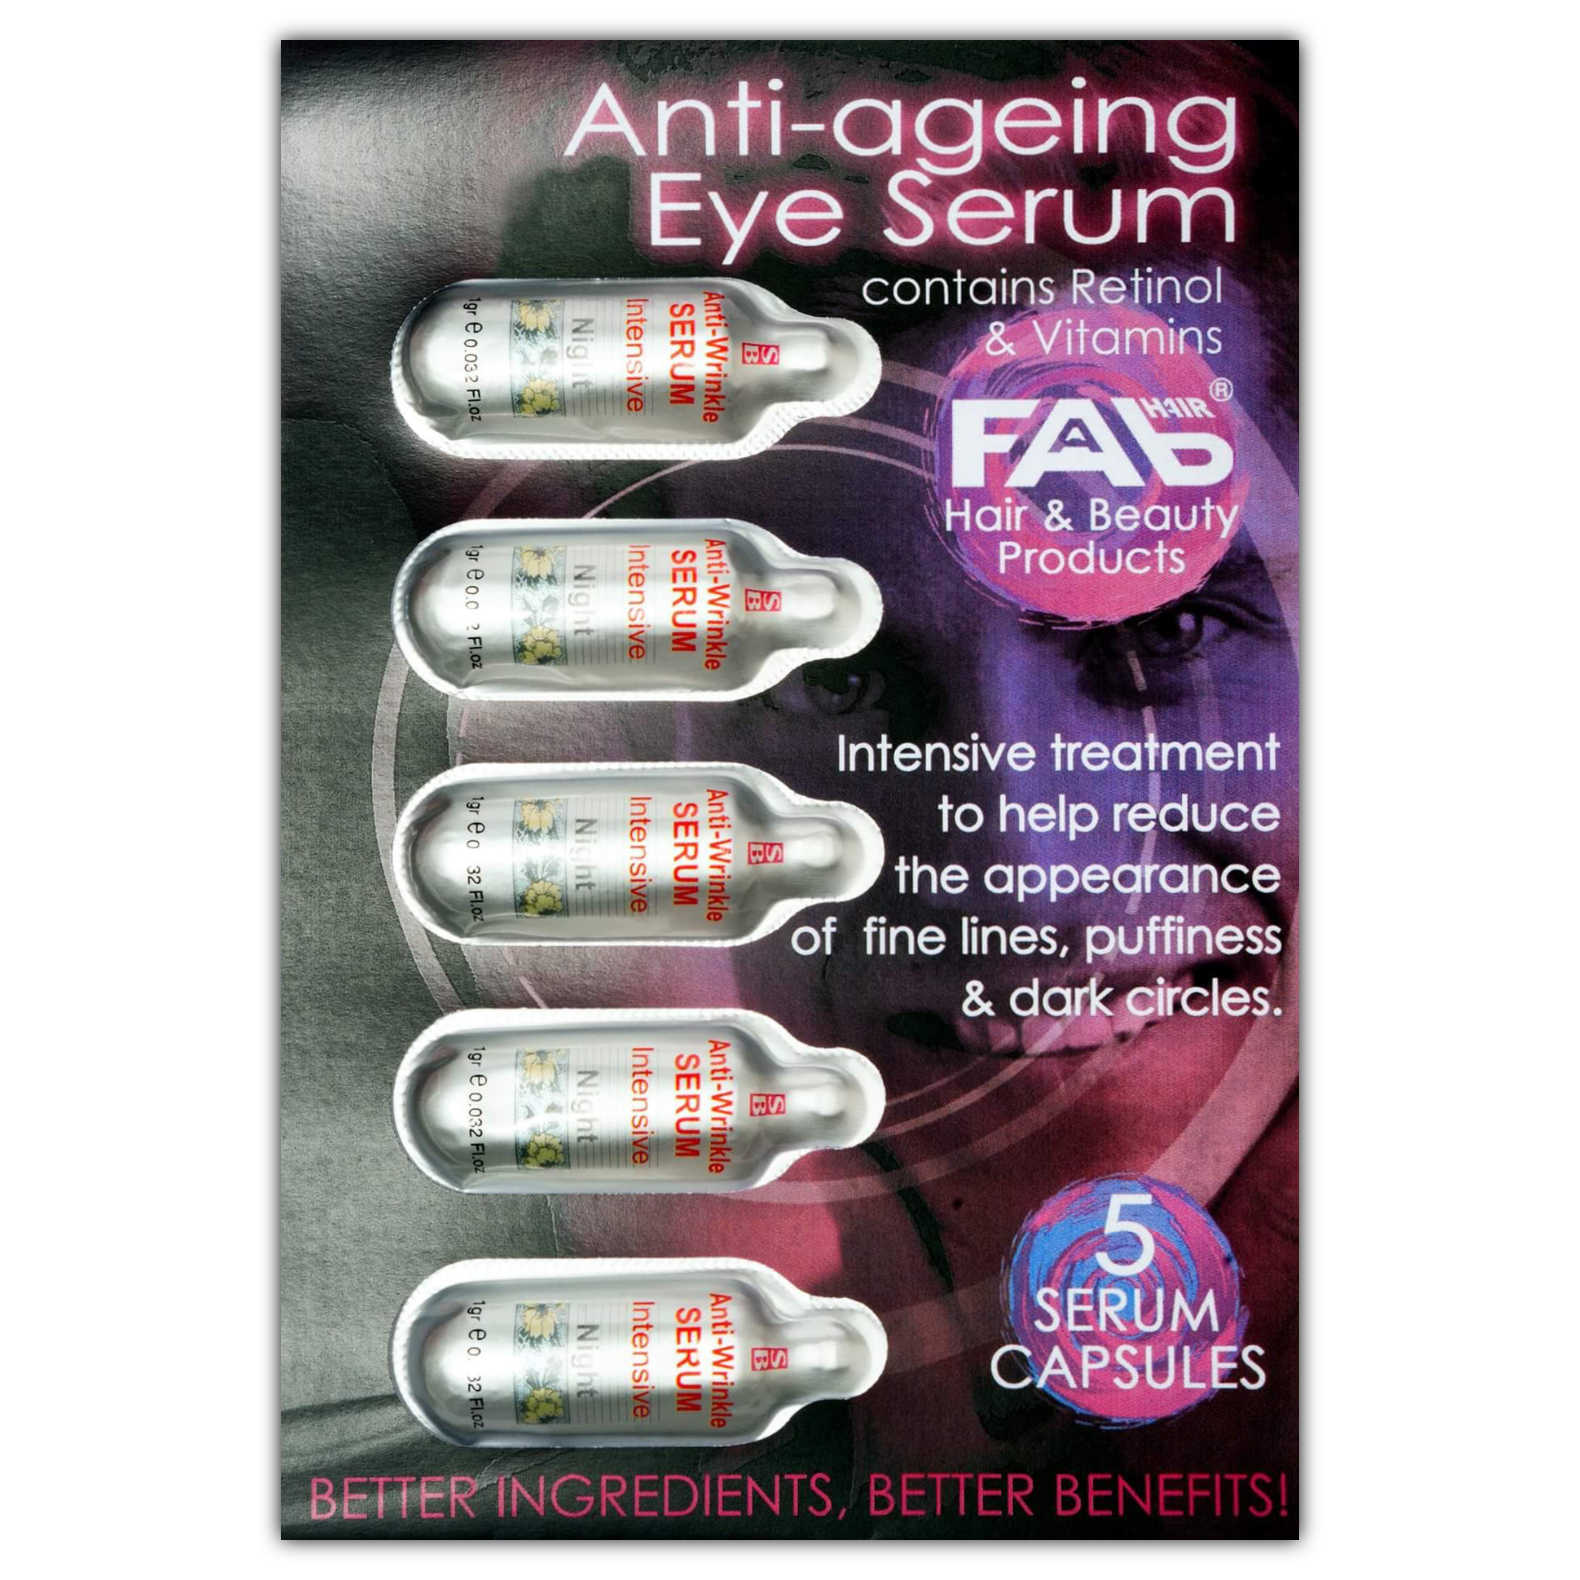 Anti-ageing Eye Serum containing retinol and vitamins by FAB Hair and Beauty